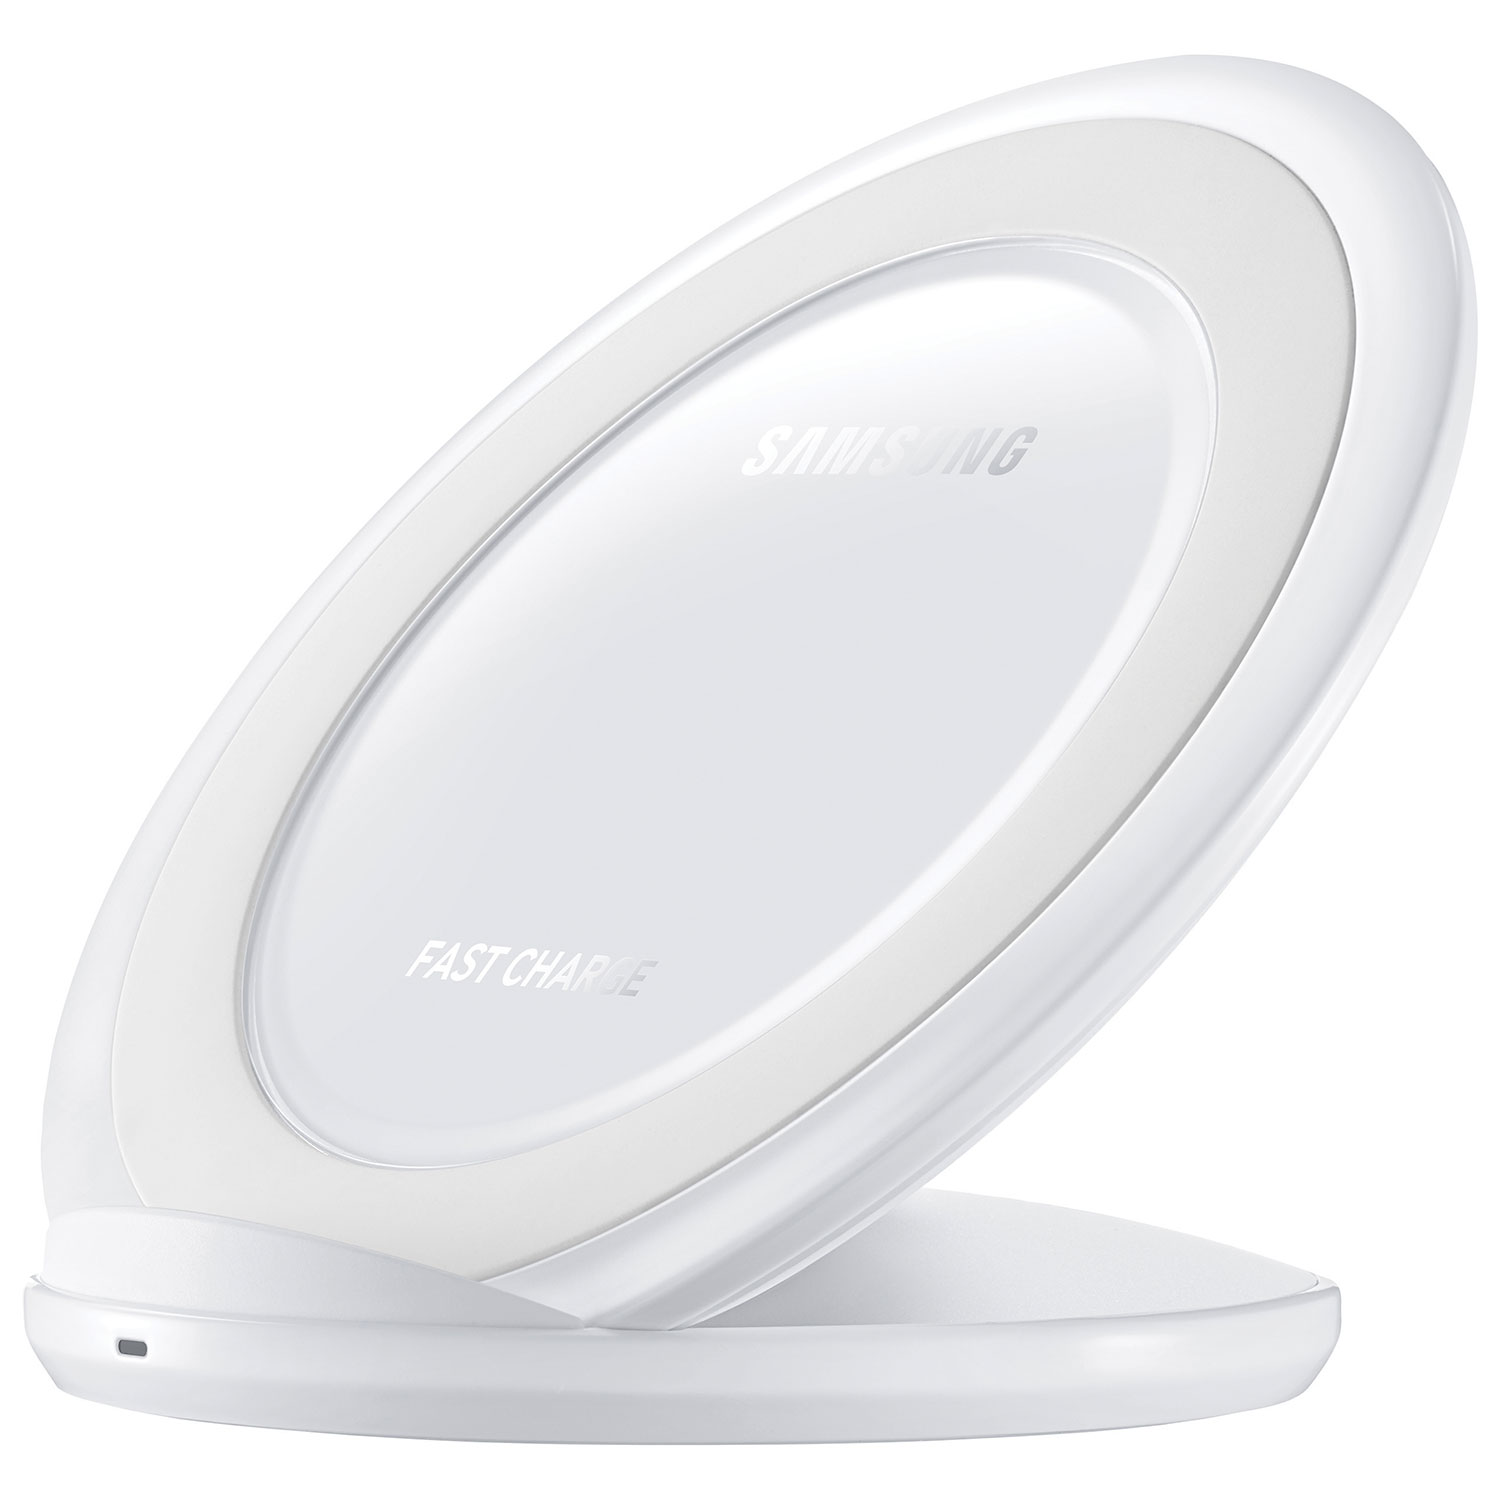 samsung wireless charger. samsung qi wireless charging stand - white : \u0026 power docks best buy canada charger